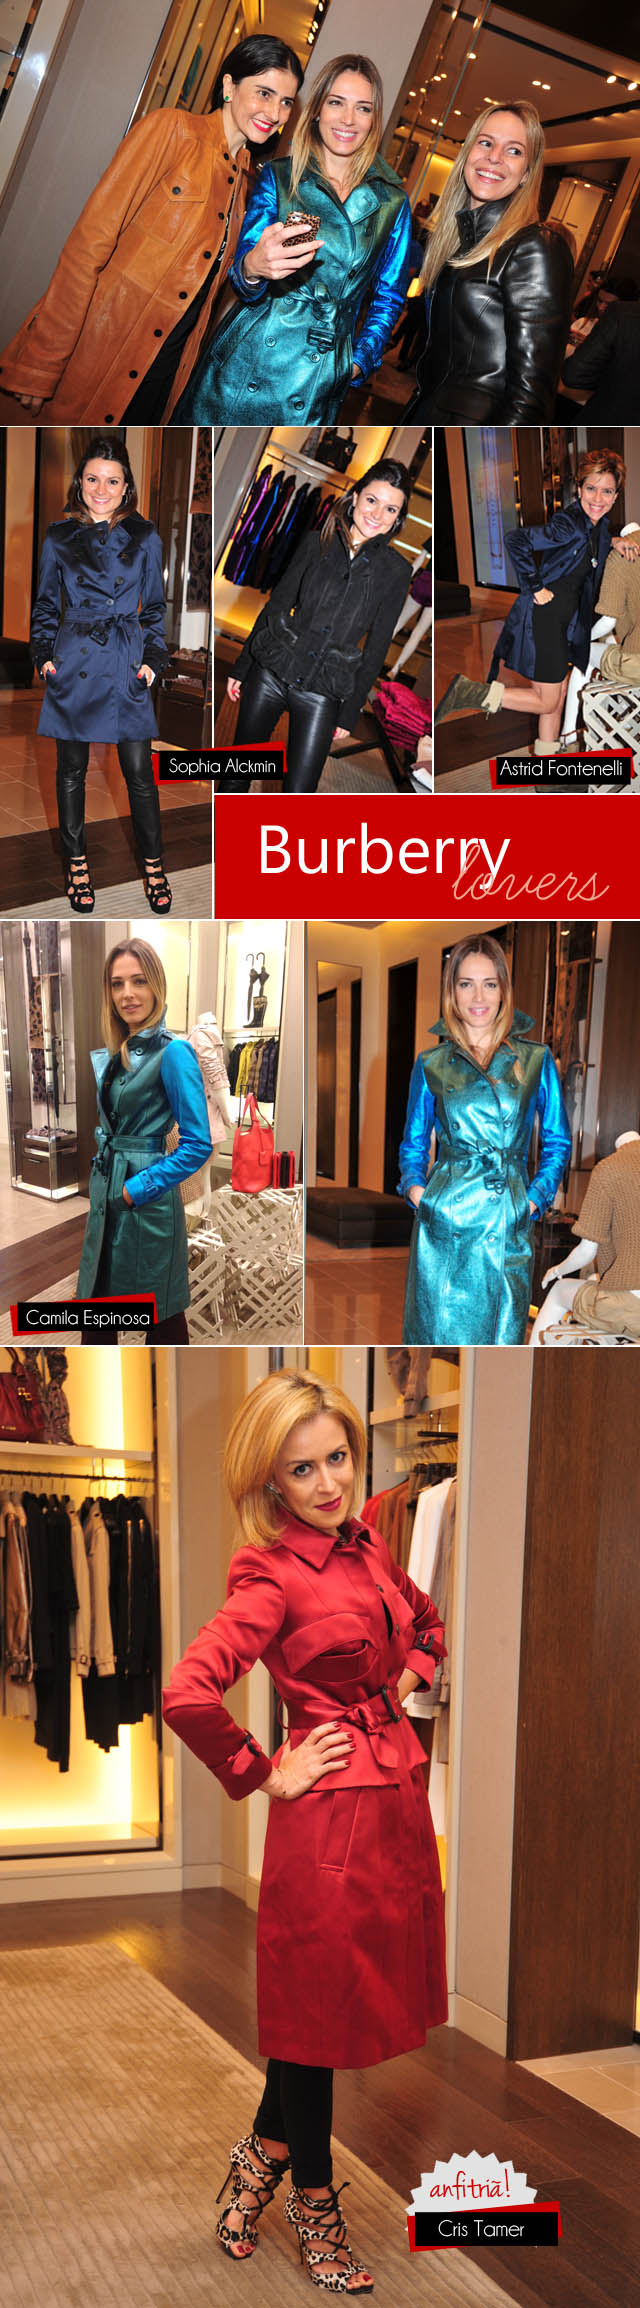 Burberry lovers! | Blog da Alice Ferraz